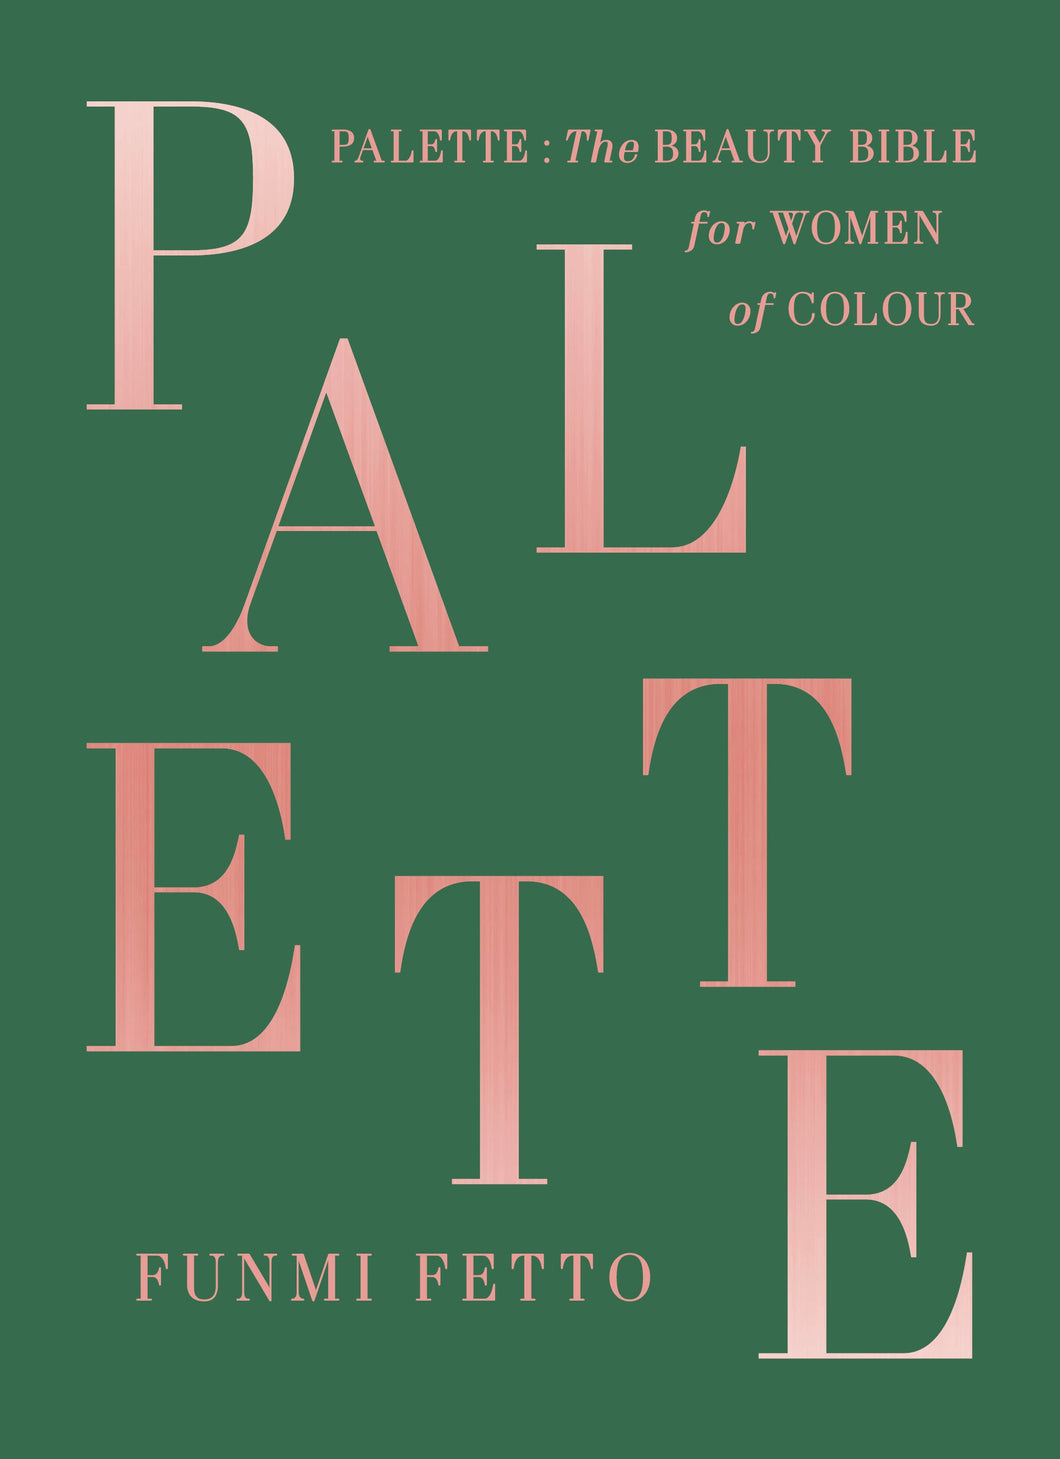 Palette: The Beauty Bible for Women of Color by Funmi Fetto